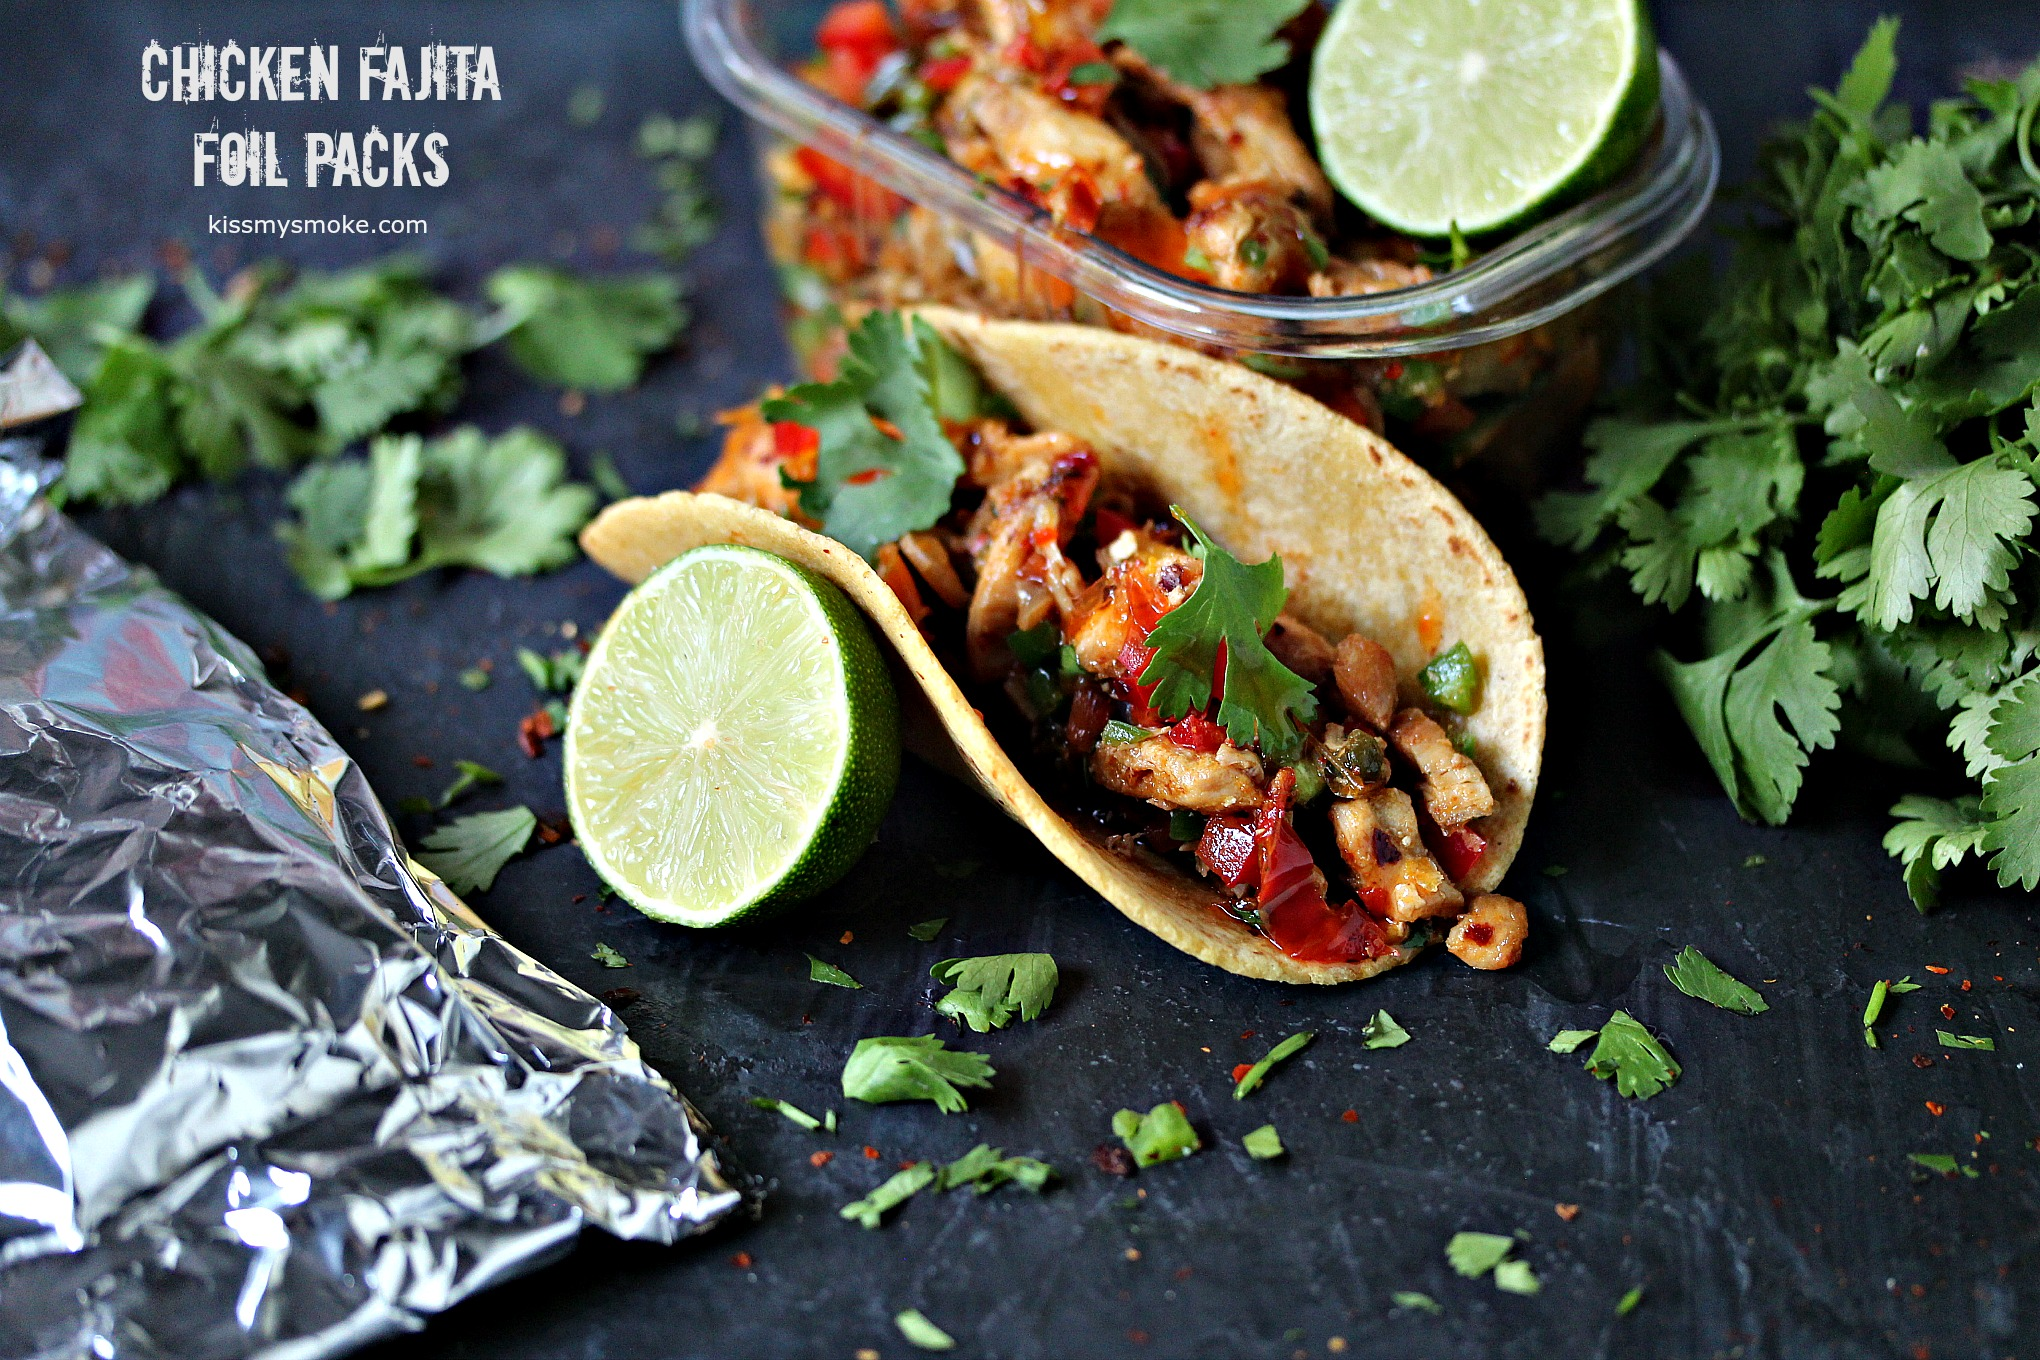 Grilled Chicken Fajita Foil Packs from kissmysmoke.com- These quick and easy chicken fajitas are cooked in foil packs to make cleanup a snap. Make extra foil packs and your weekly meal prep is done!